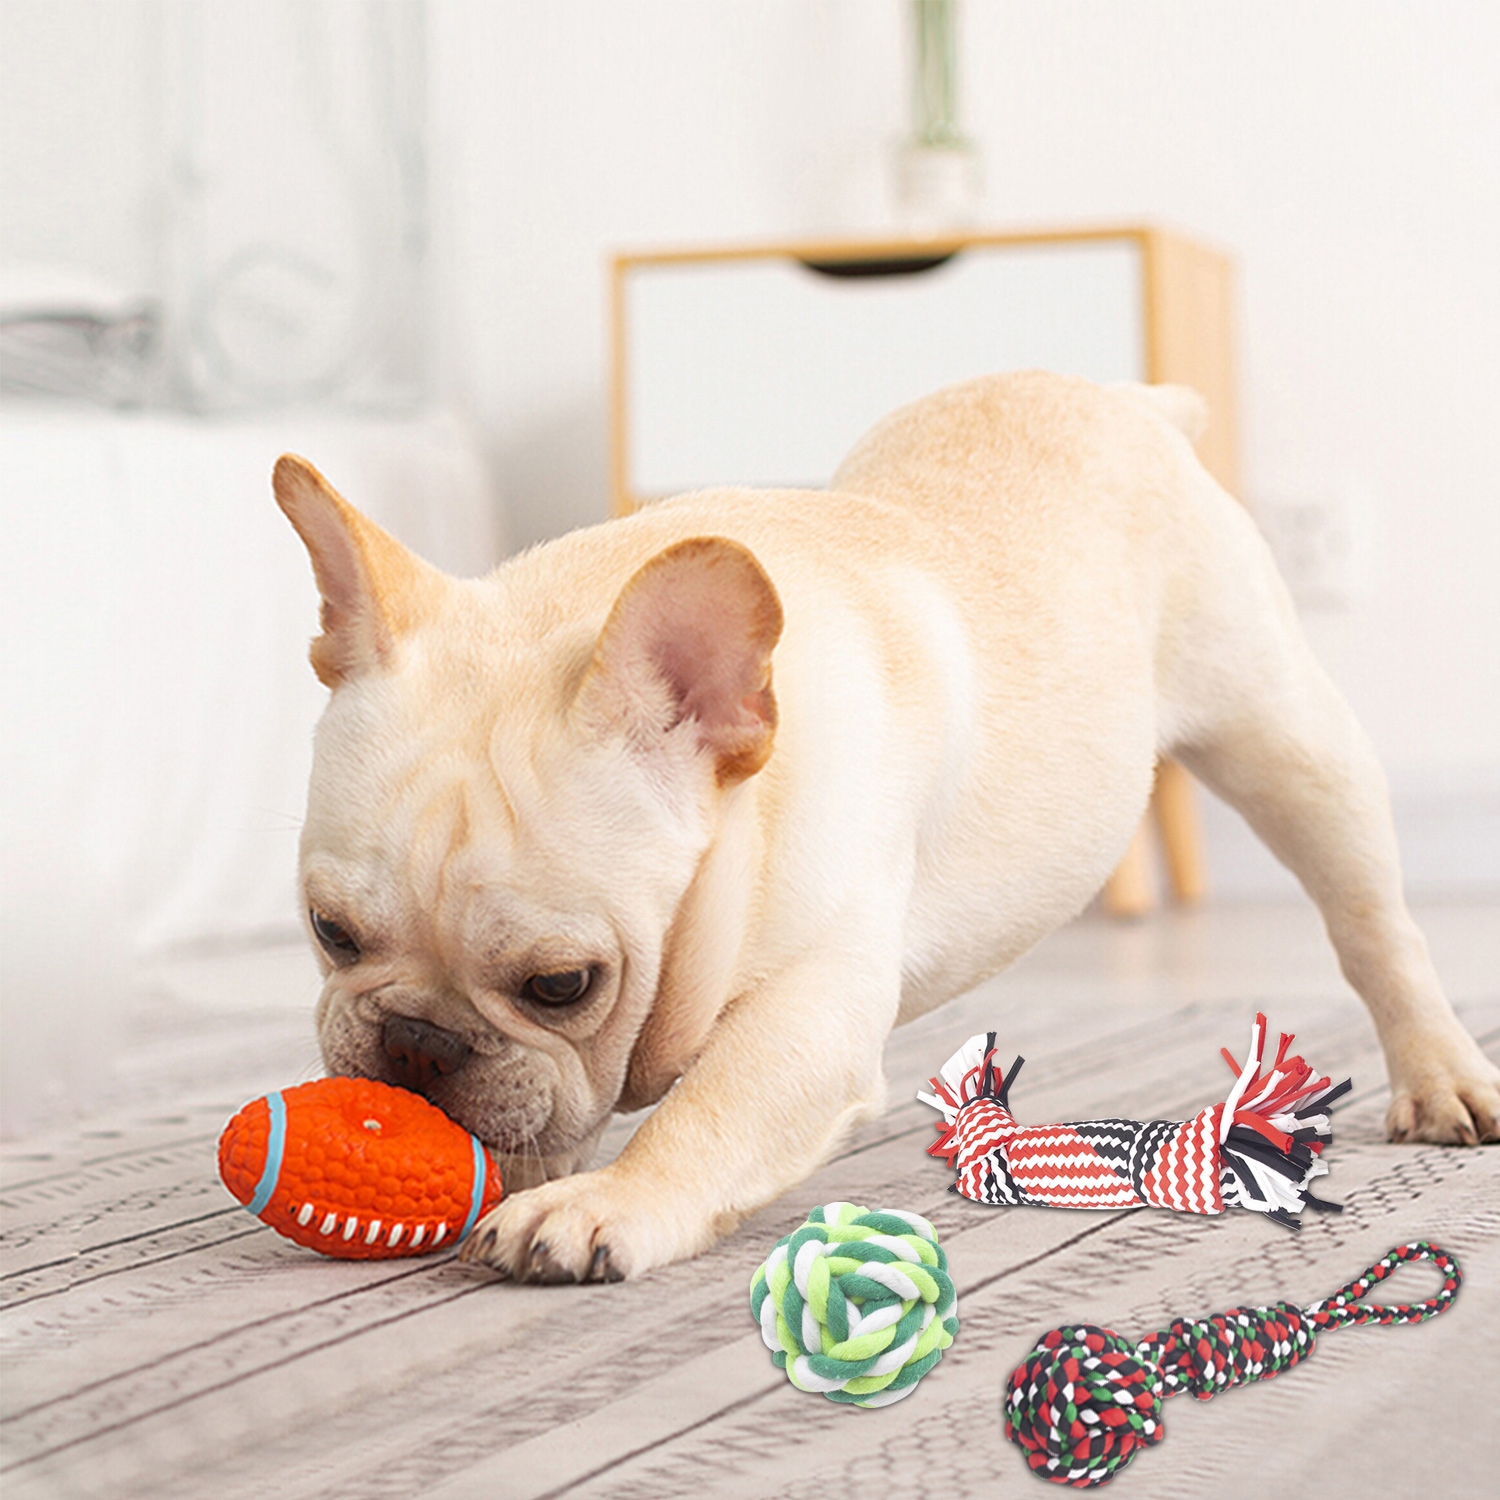 7 Pack Dog Rope Chew Tug Toys, Fun Indoors Outdoors Toys for Small and Medium Dogs Puppy Training Playing Teething Cleaning